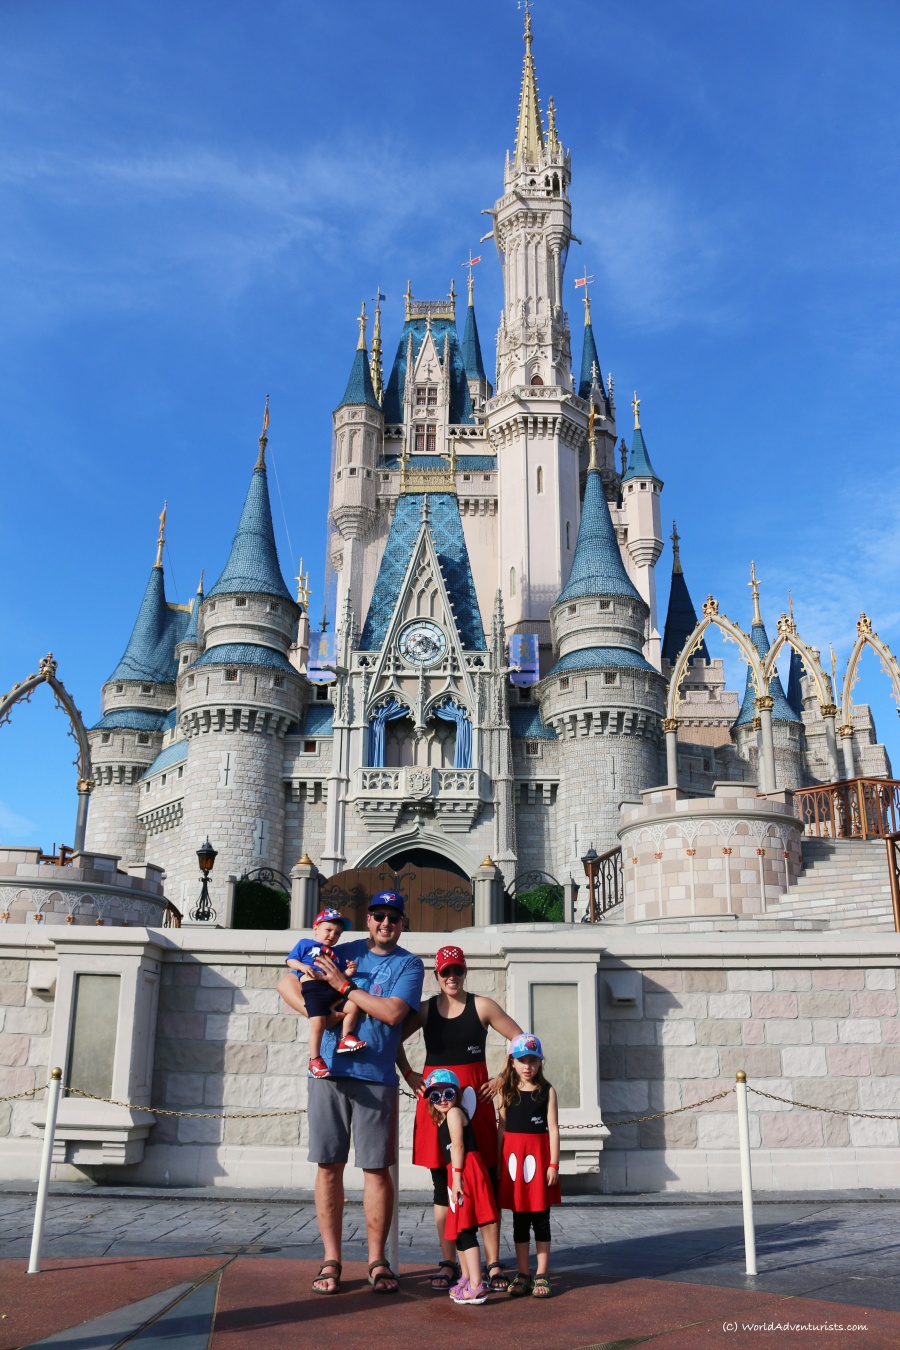 A family photo in front of the castle at Disney World.